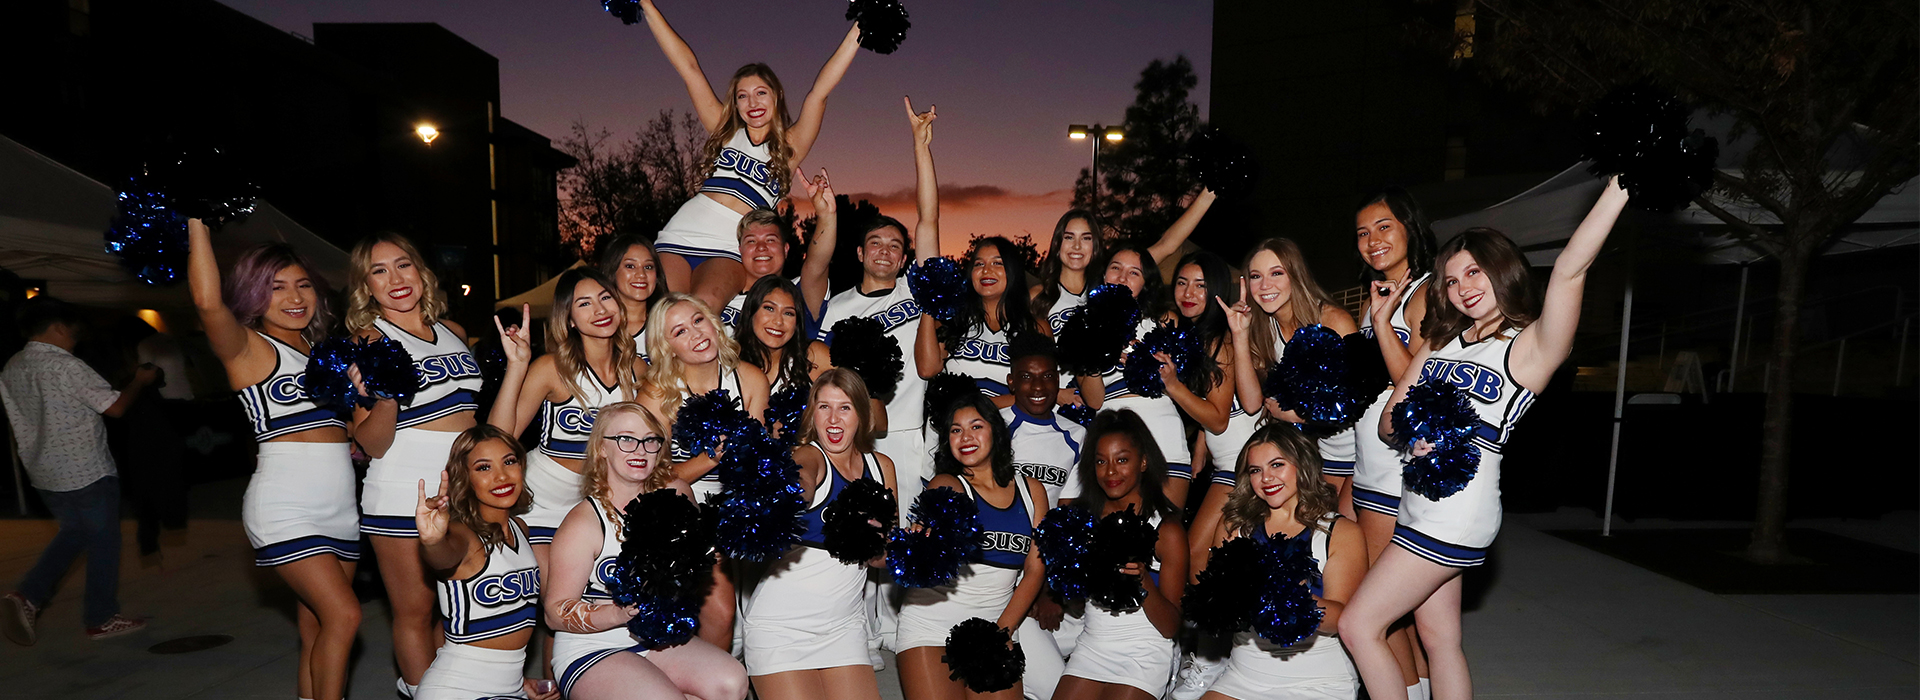 CSUSB Homecoming sets records for attendance